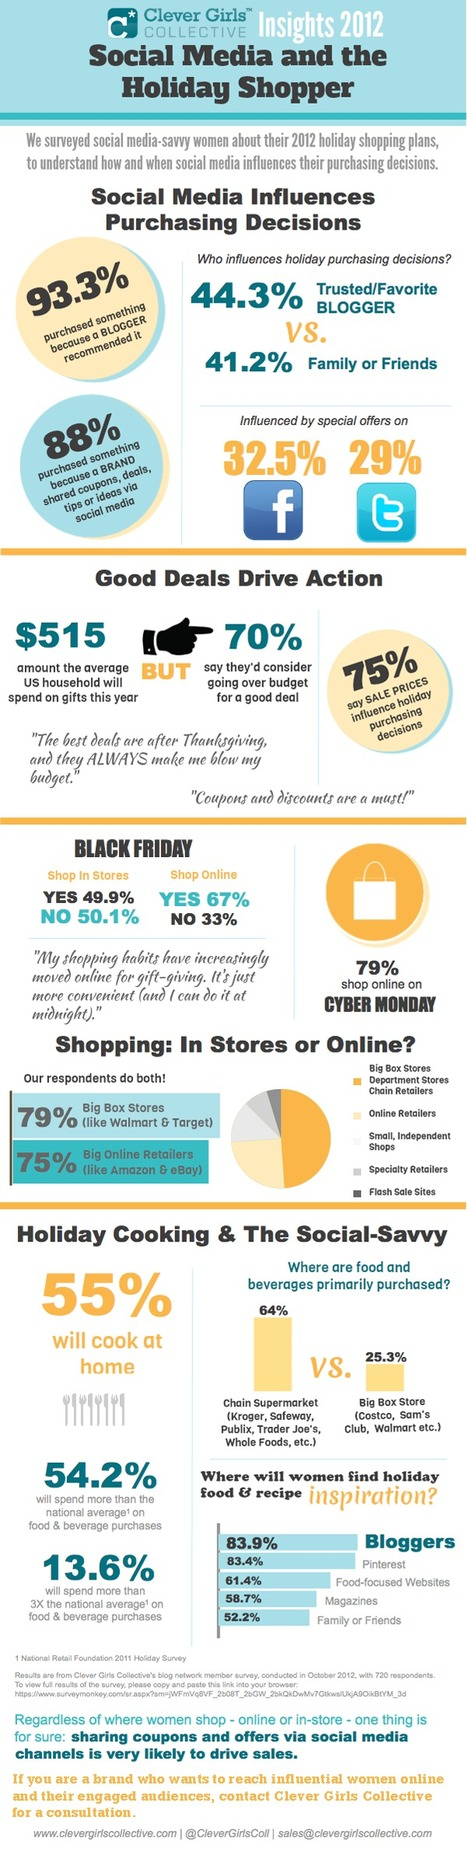 Social Media and the Female Holiday Shopper (Infographic) | Business 2 Community | Digital Marketing for Business | Scoop.it